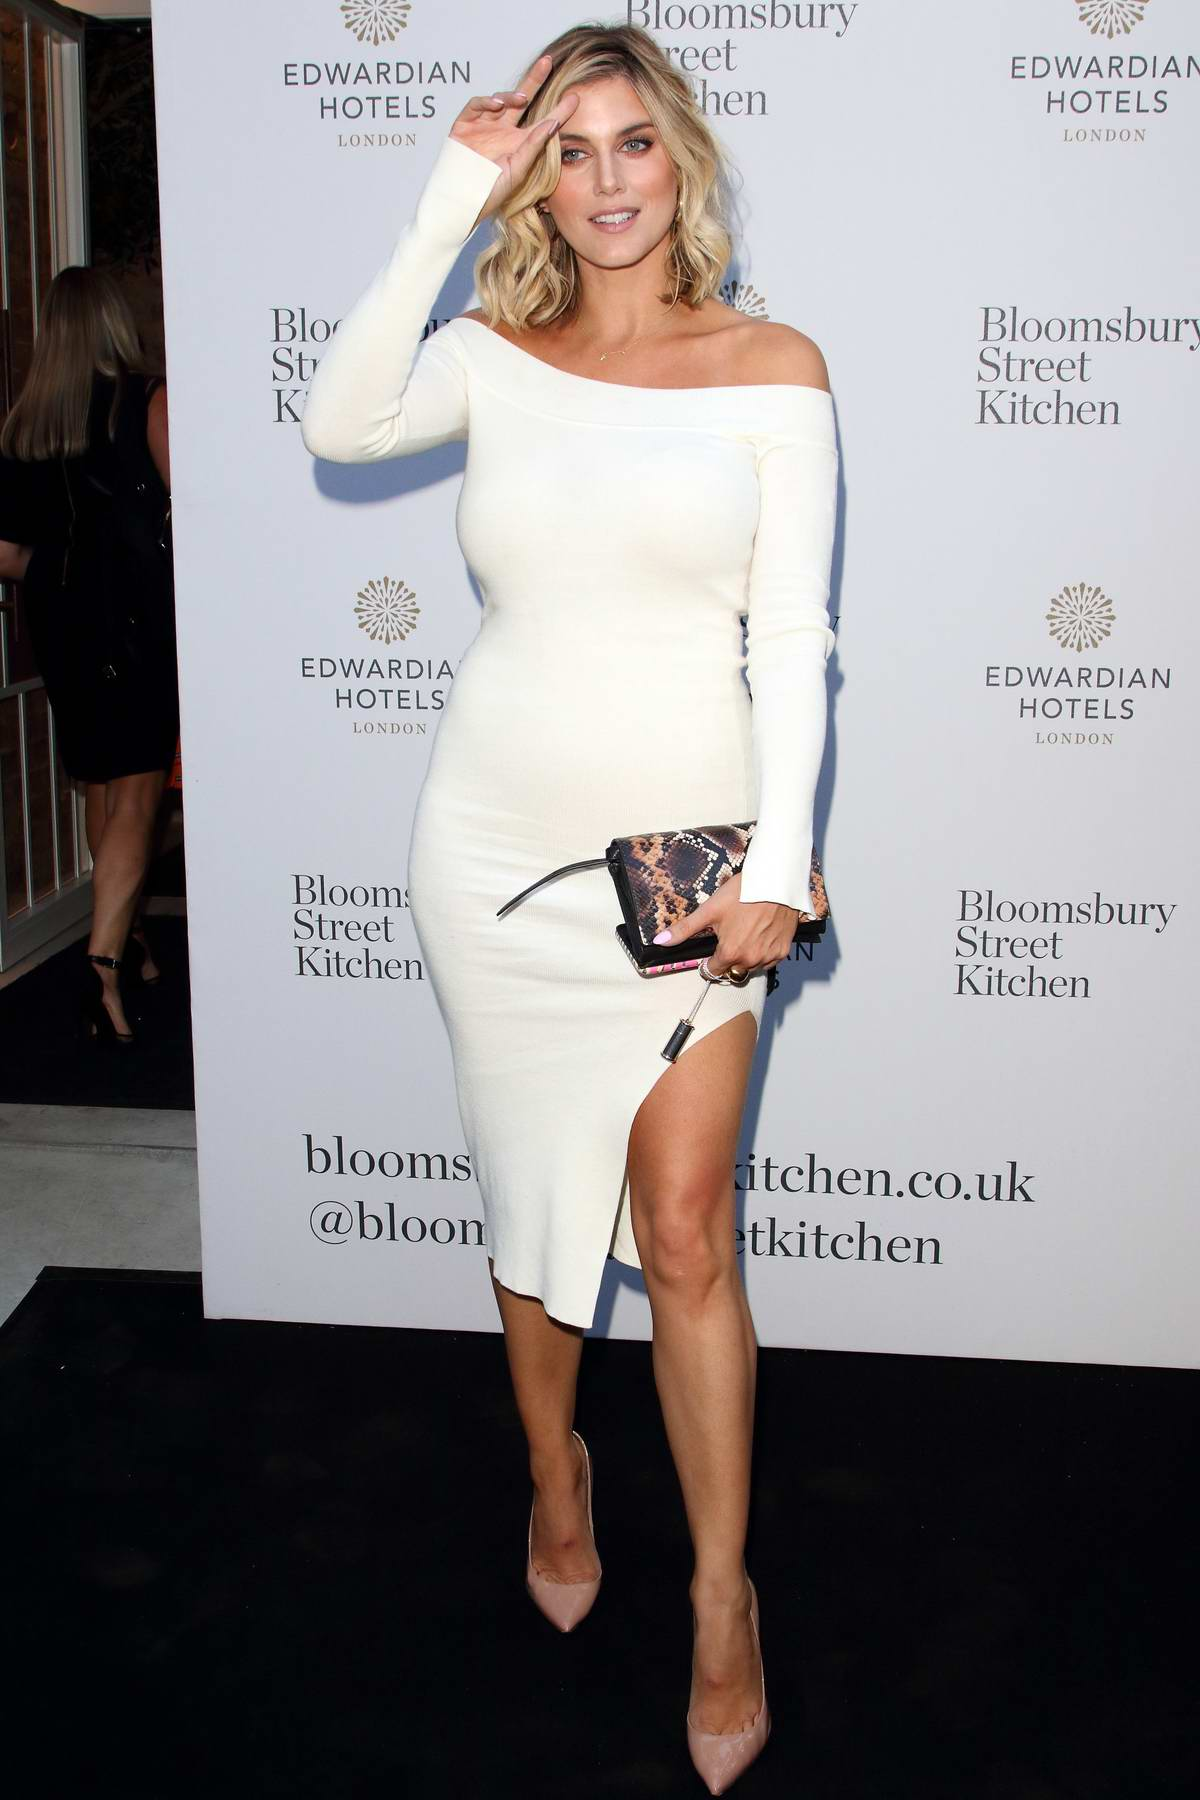 Ashley James attends the Bloomsbury Street Kitchen Restaurant Launch Party in London, UK